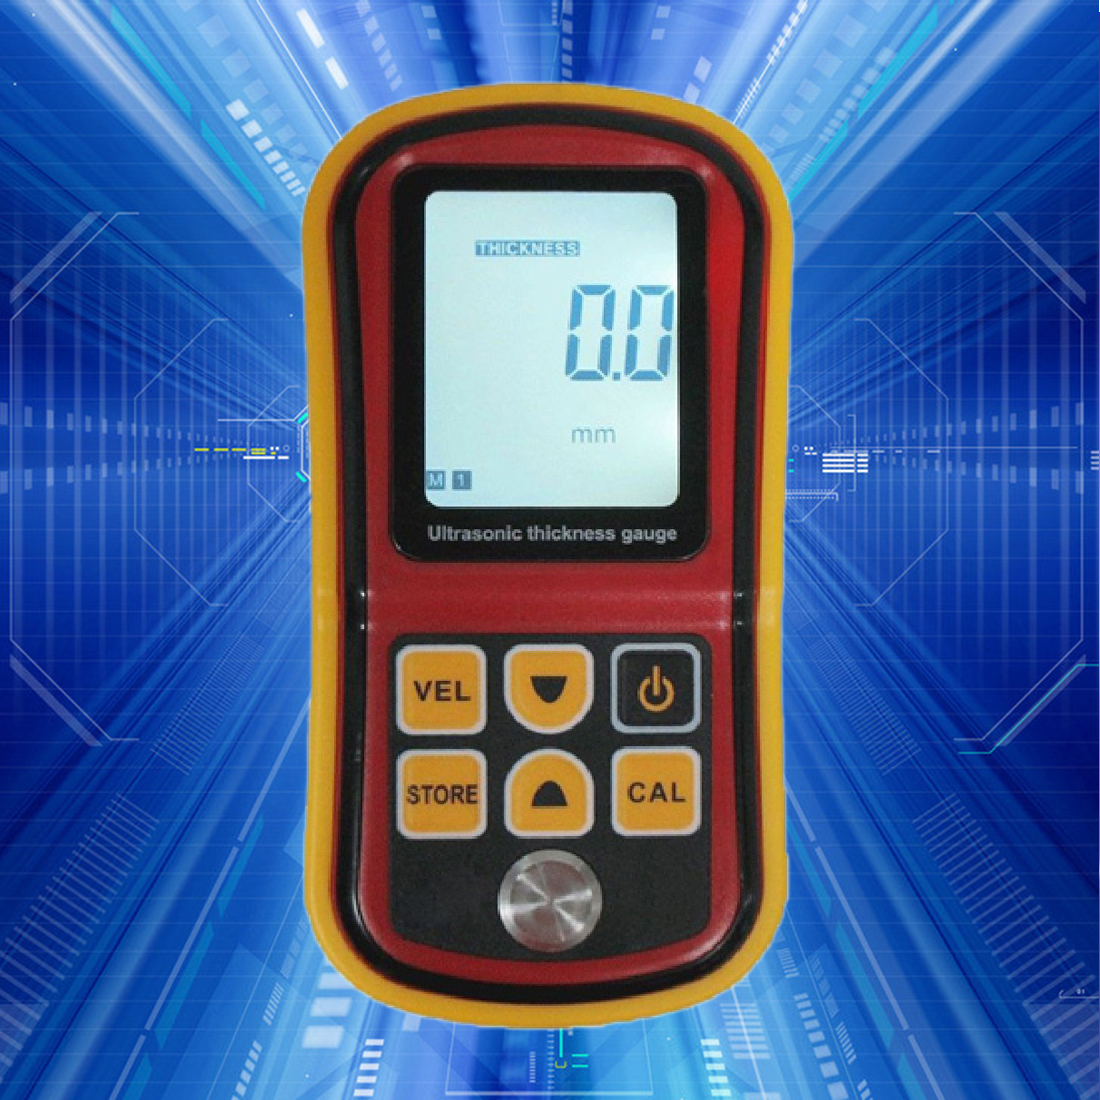 GM100 Ultrasonic Thickness Gauge Tester 1.2~225mm (Steel) Auto power off LCD backlight display Range finder